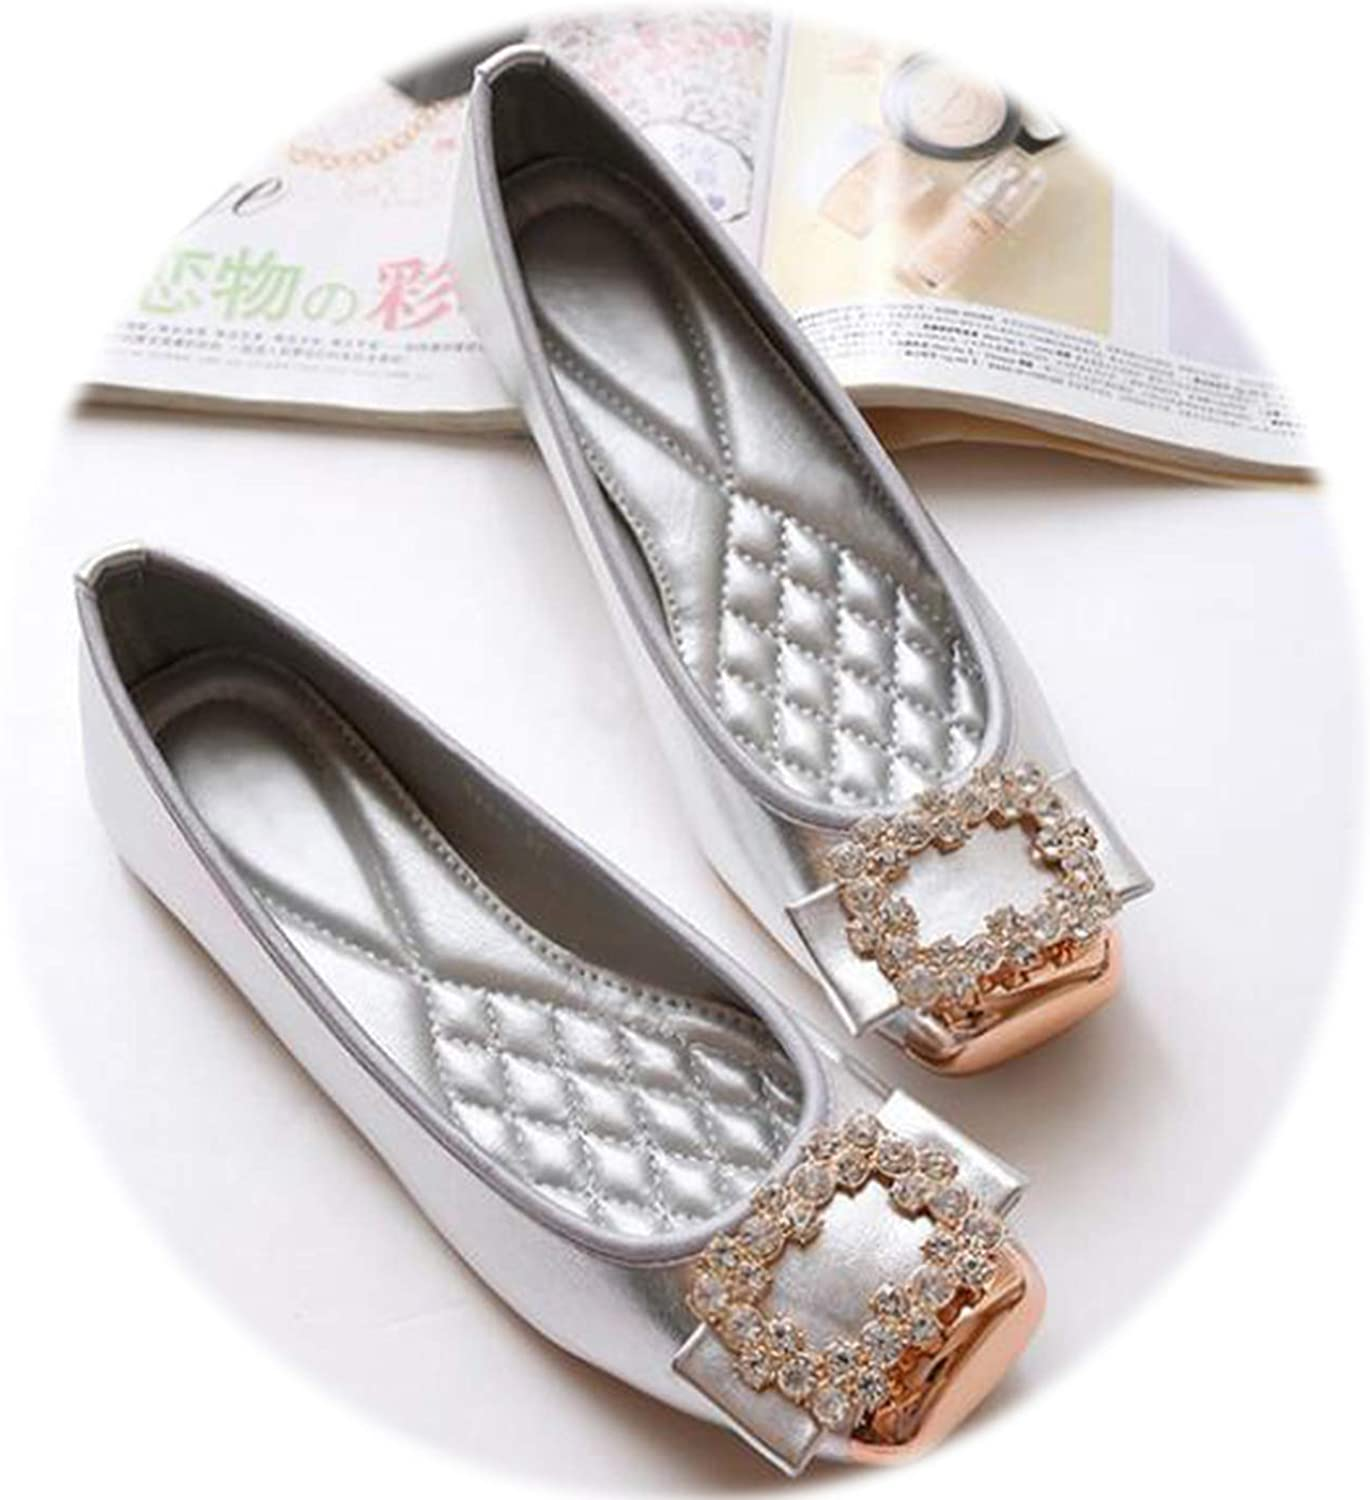 Awmerny Boots Sring Summer Casual shoes Women Flats Flat shoes Crystal Single shoes H589